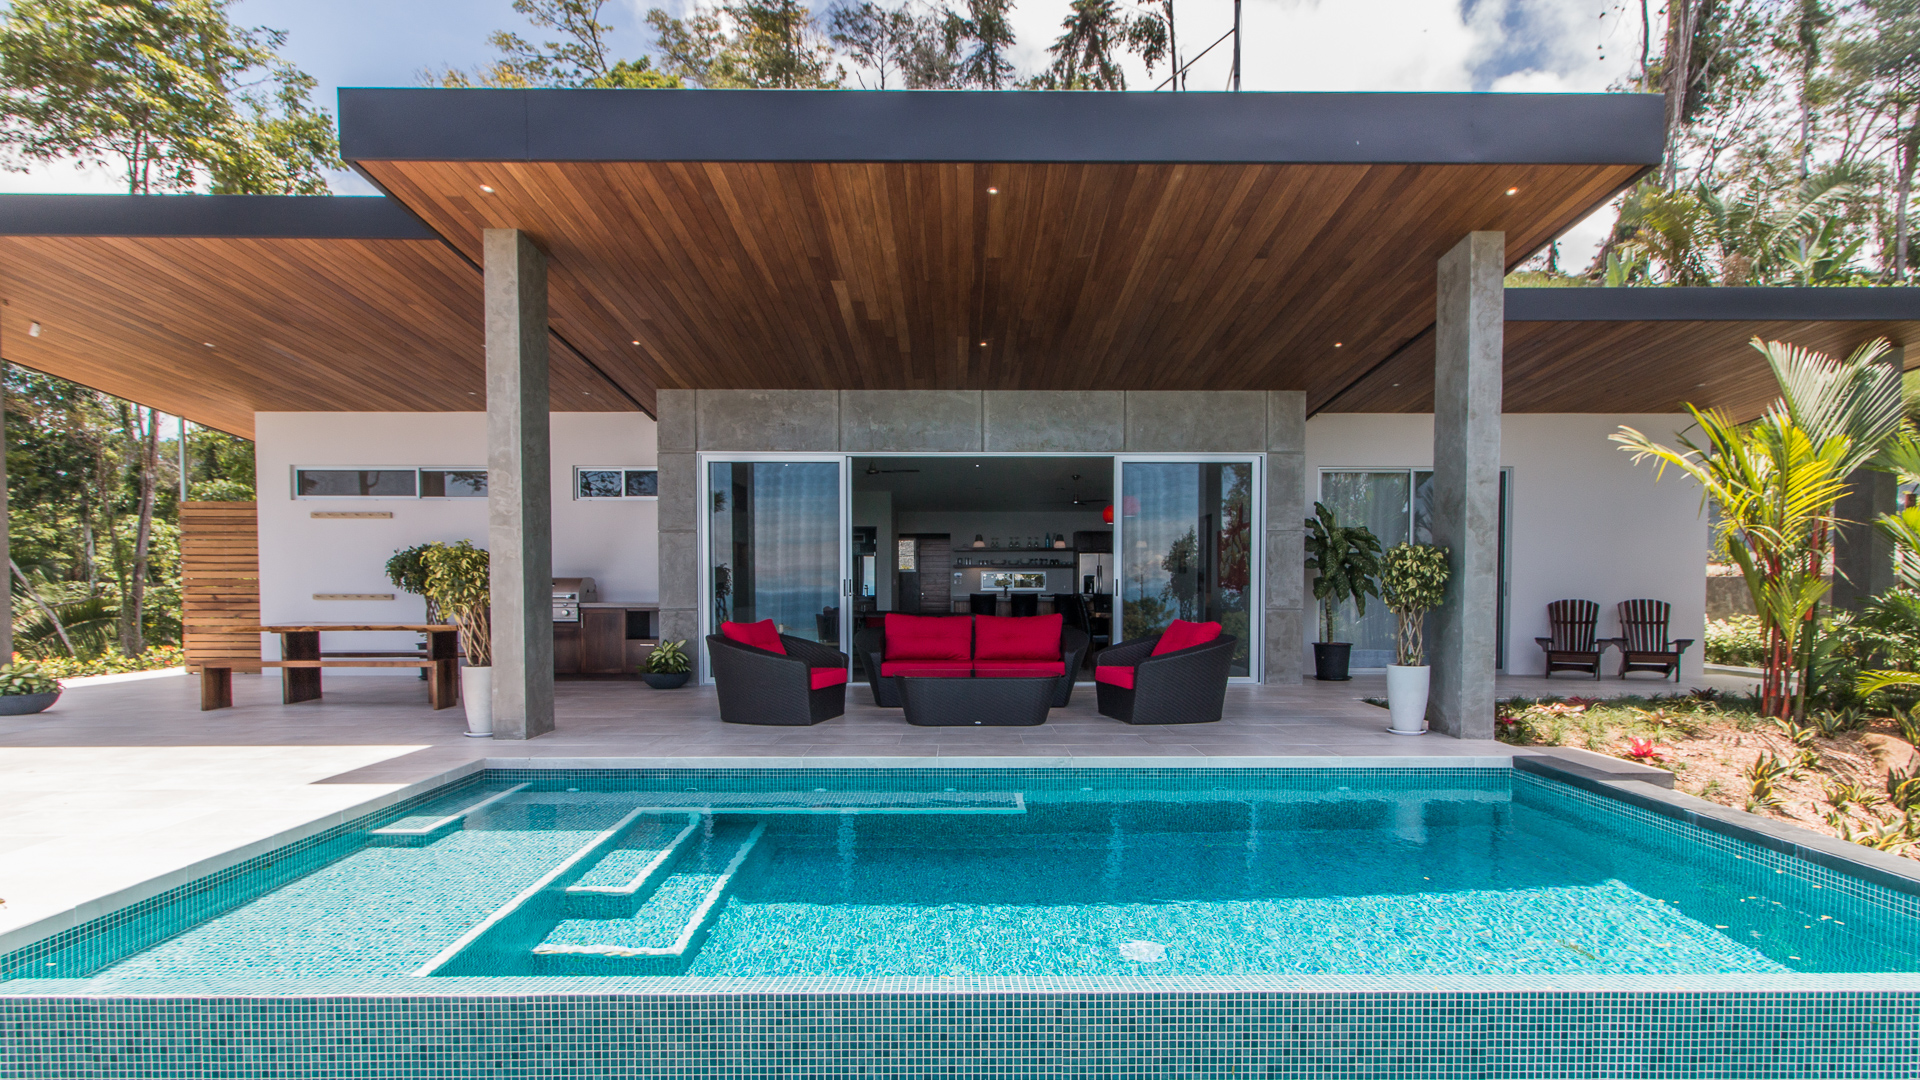 0 4 acres 3 bedroom modern luxury home with pool and for Four bedroom house with pool